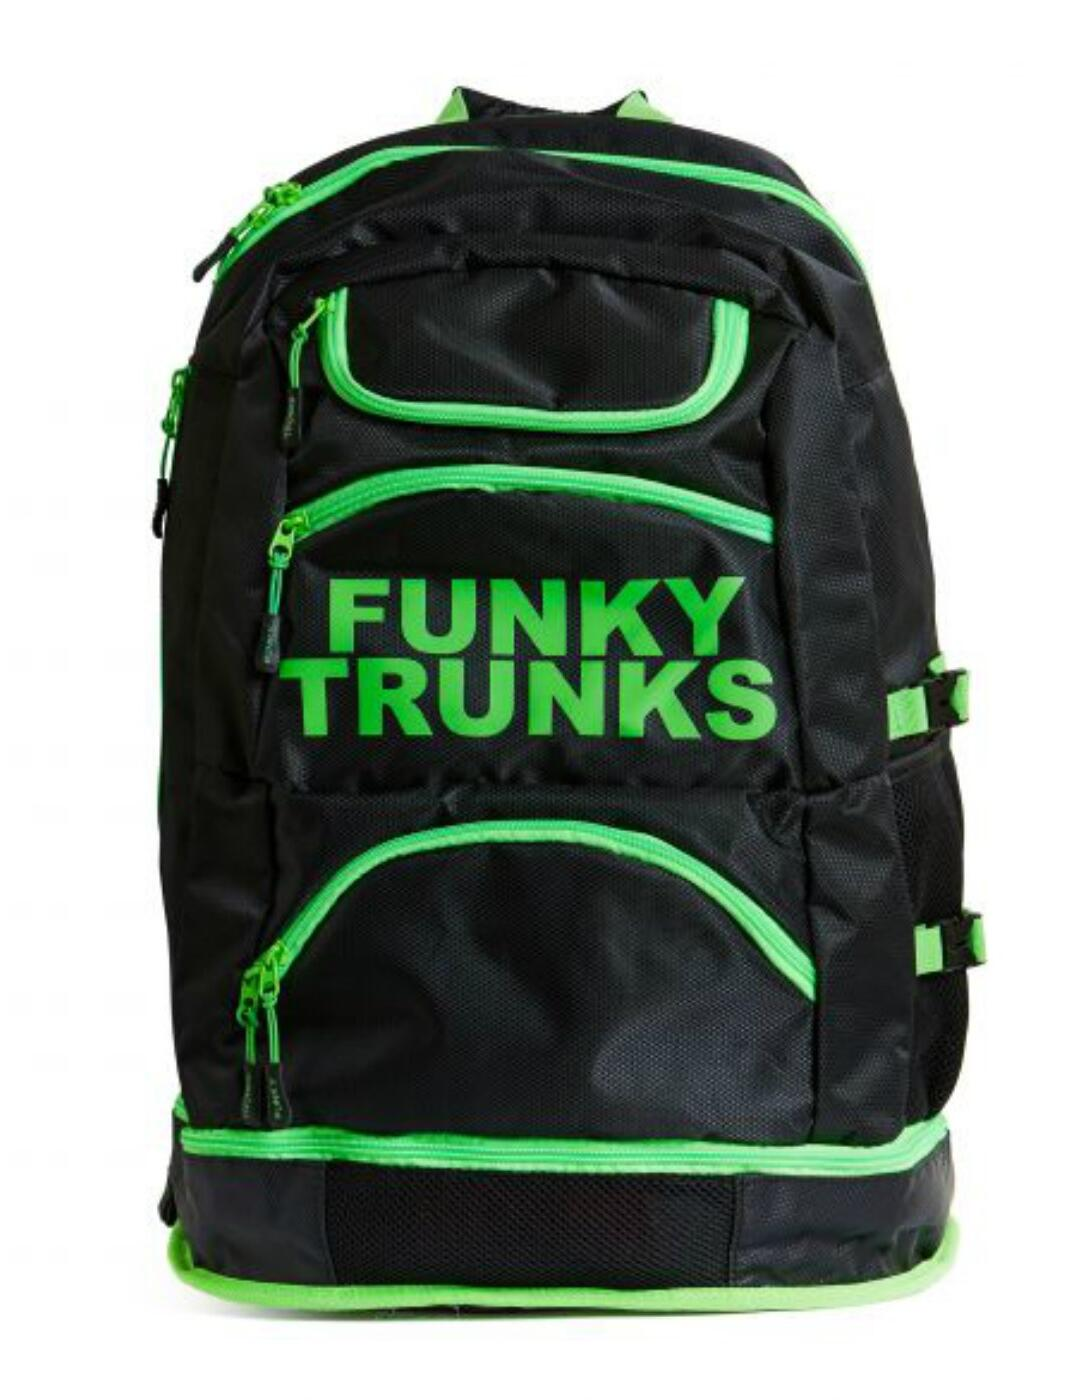 FTG003N Funky Trunks Accessories Elite Squad Backpack - FTG003N01893 Lime Light